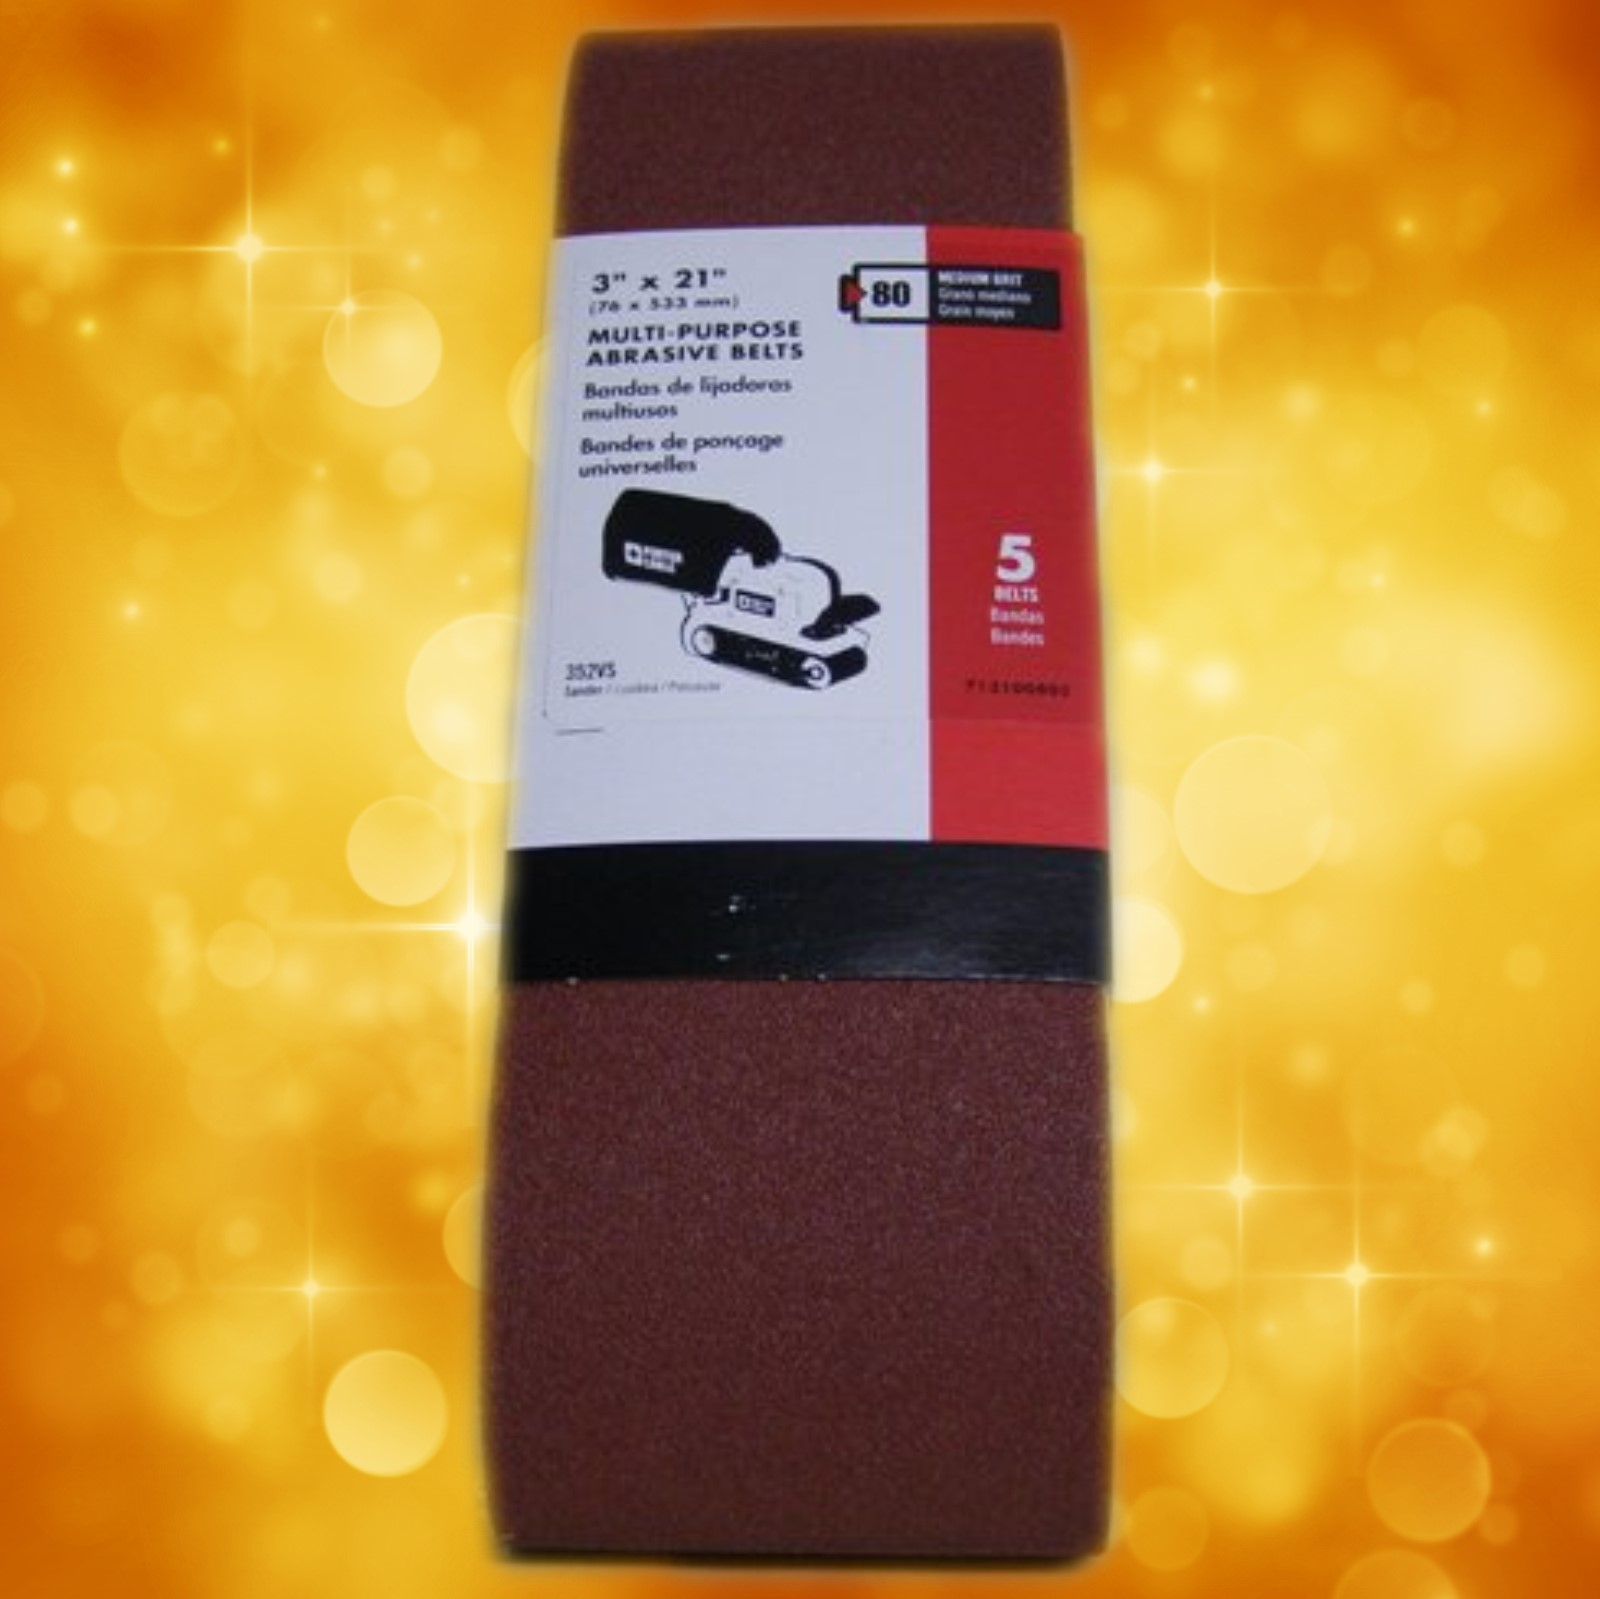 "Porter-Cable 3"" x 21"" Multi-Purpose Sanding Belt - 80 Grit 711000805"